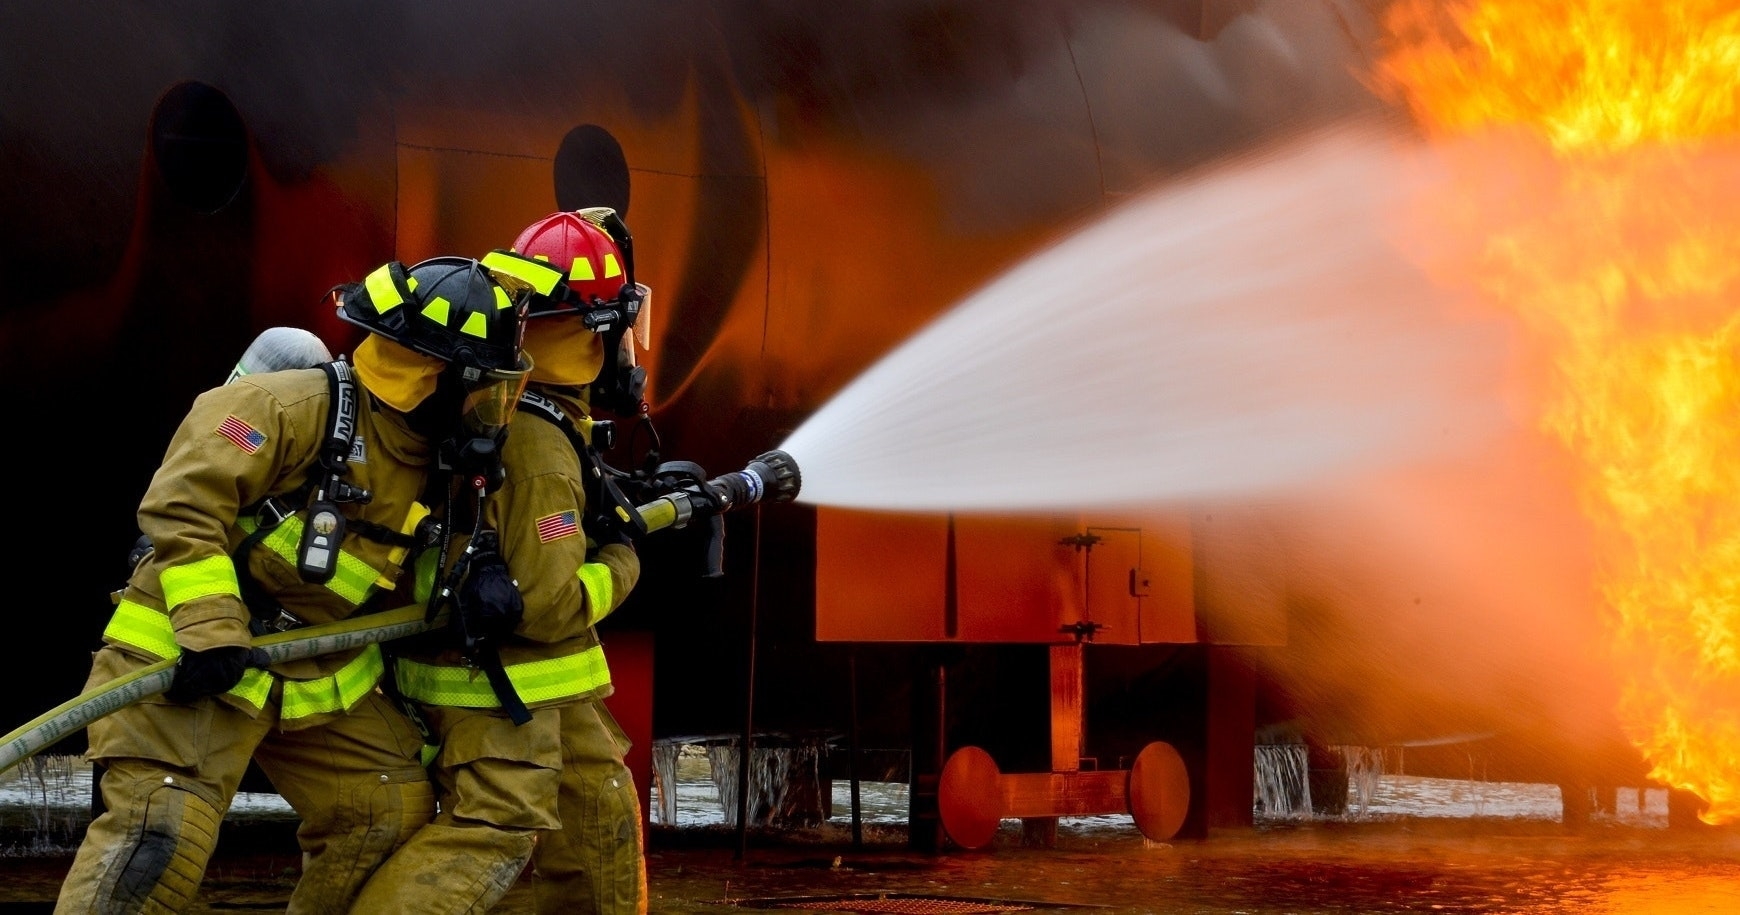 160+ Discounts on Emergency Supplies, Emergency Preparedness courses, and Disaster Preparation